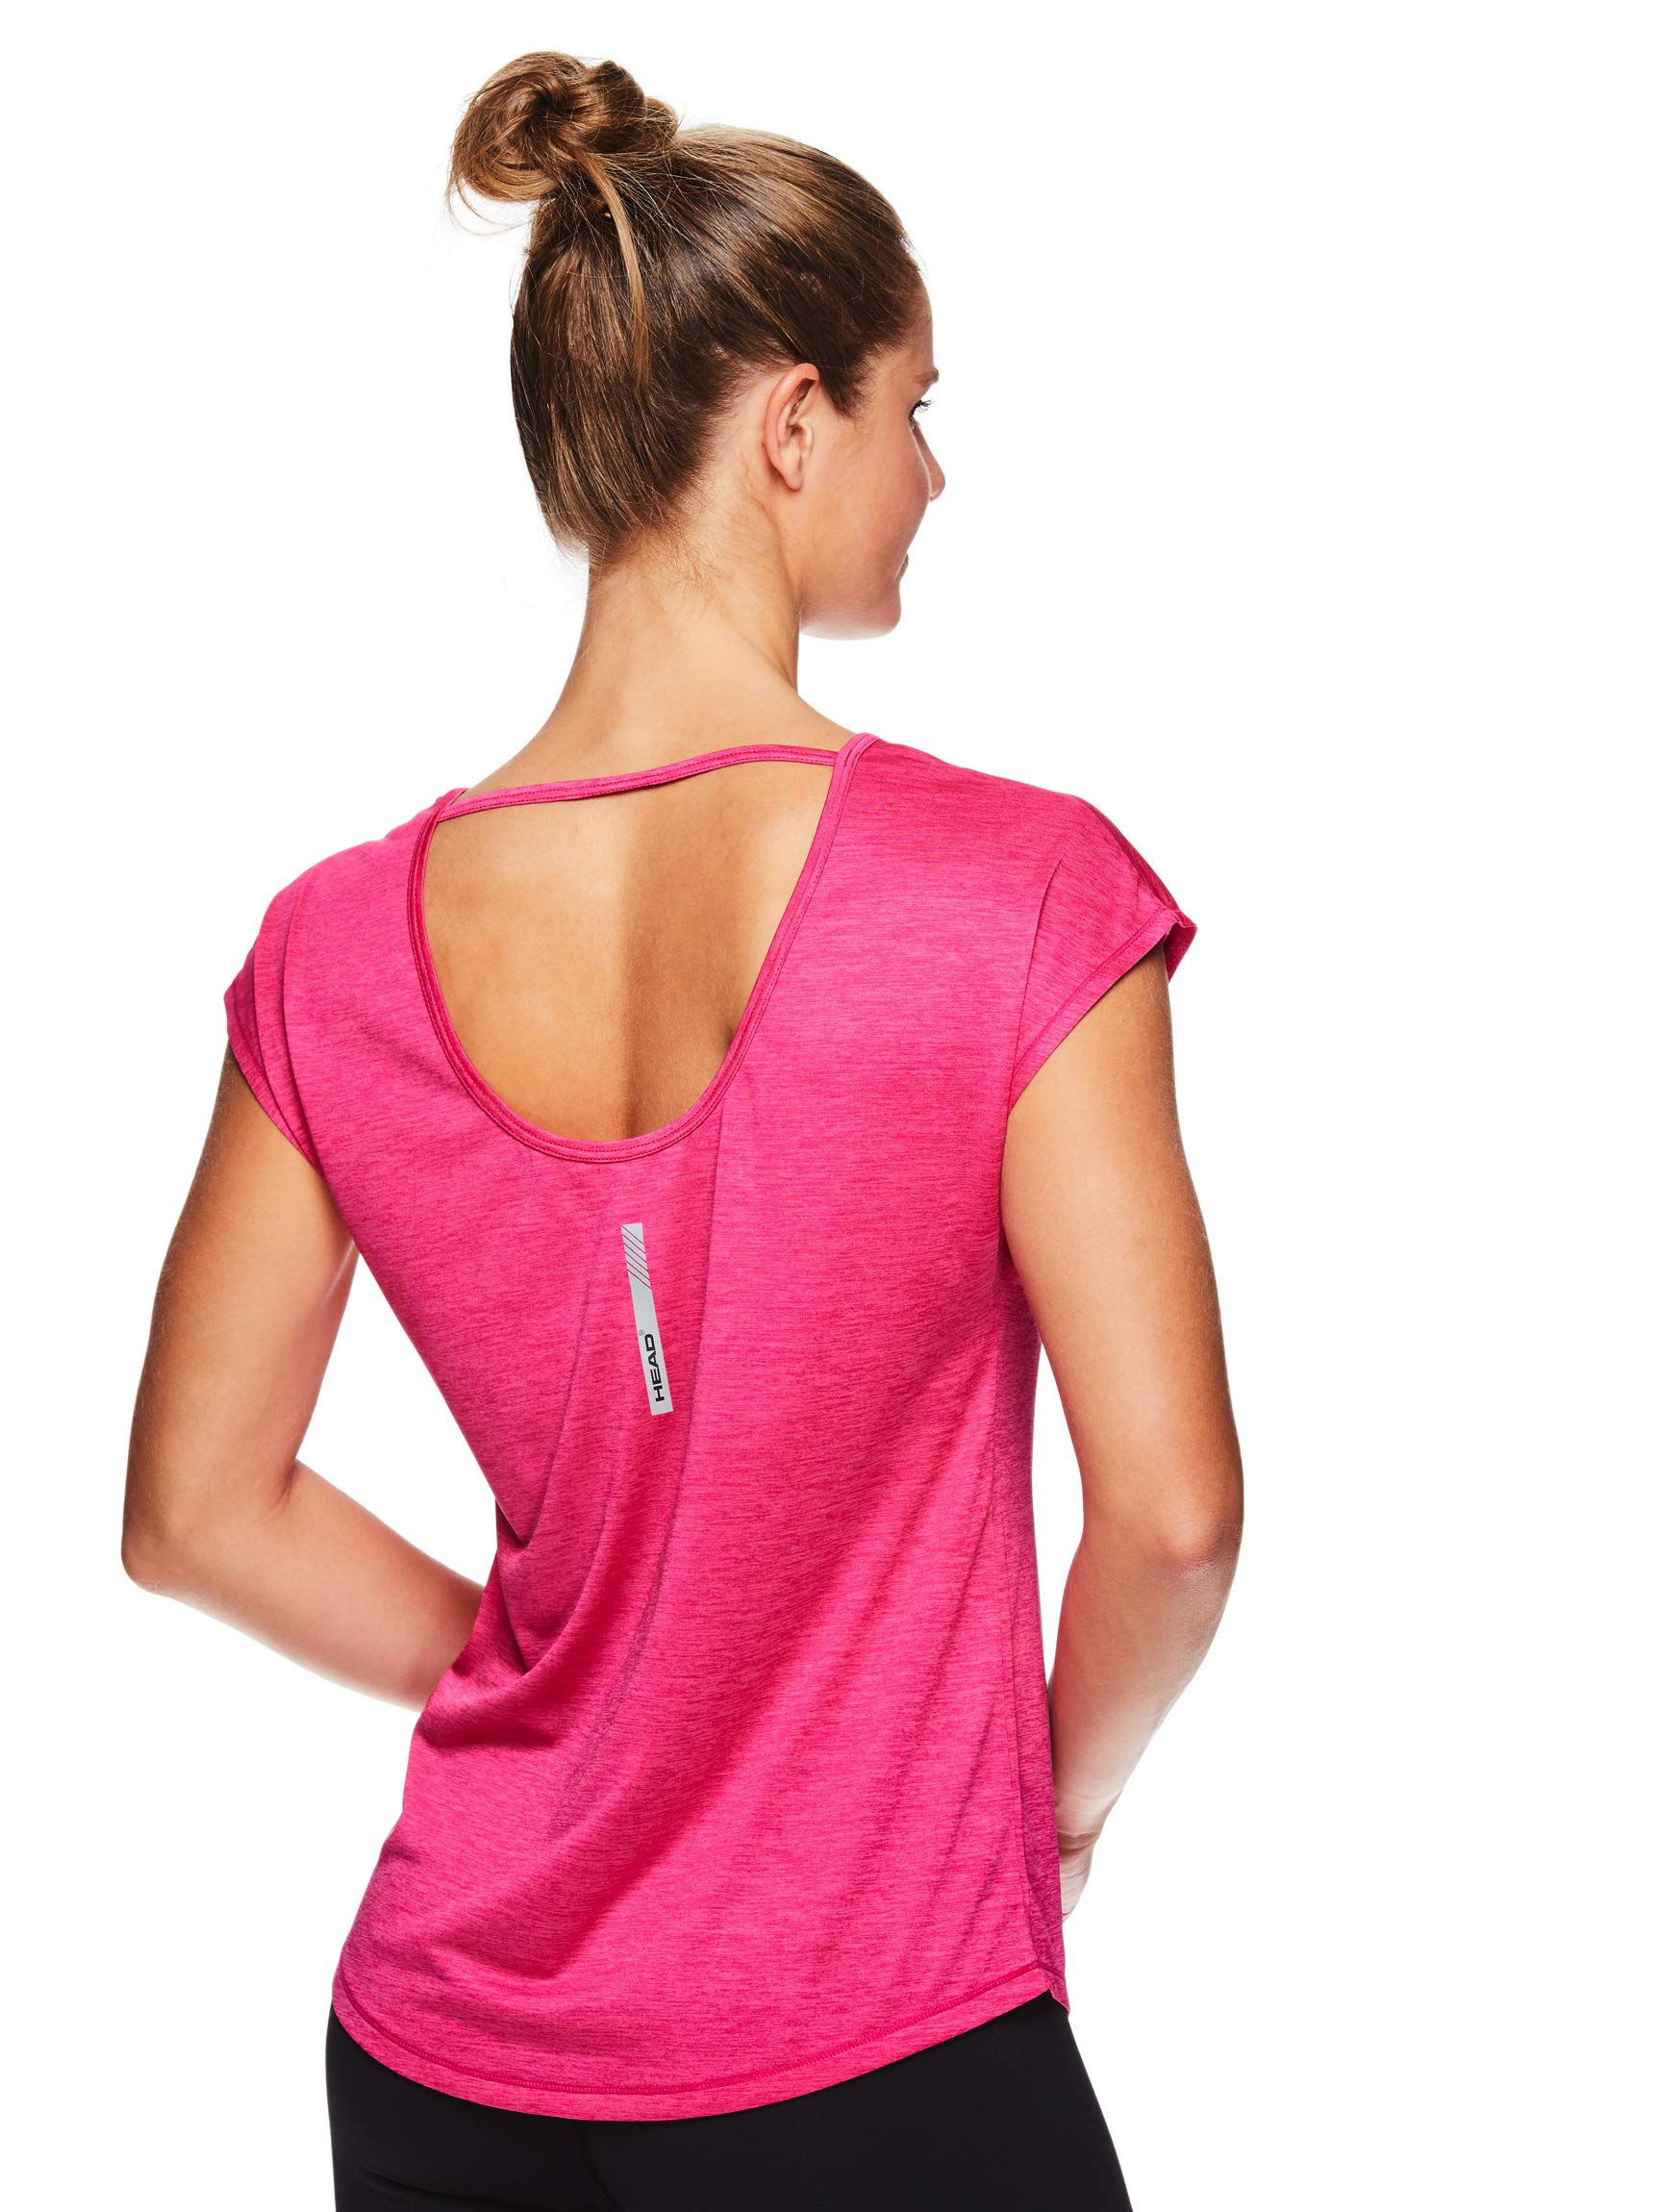 HEAD Women's Open Back Short Sleeve Workout T Shirt - Performance Scoop Neck Activewear Top - Pink Peacock Heather, X-Small